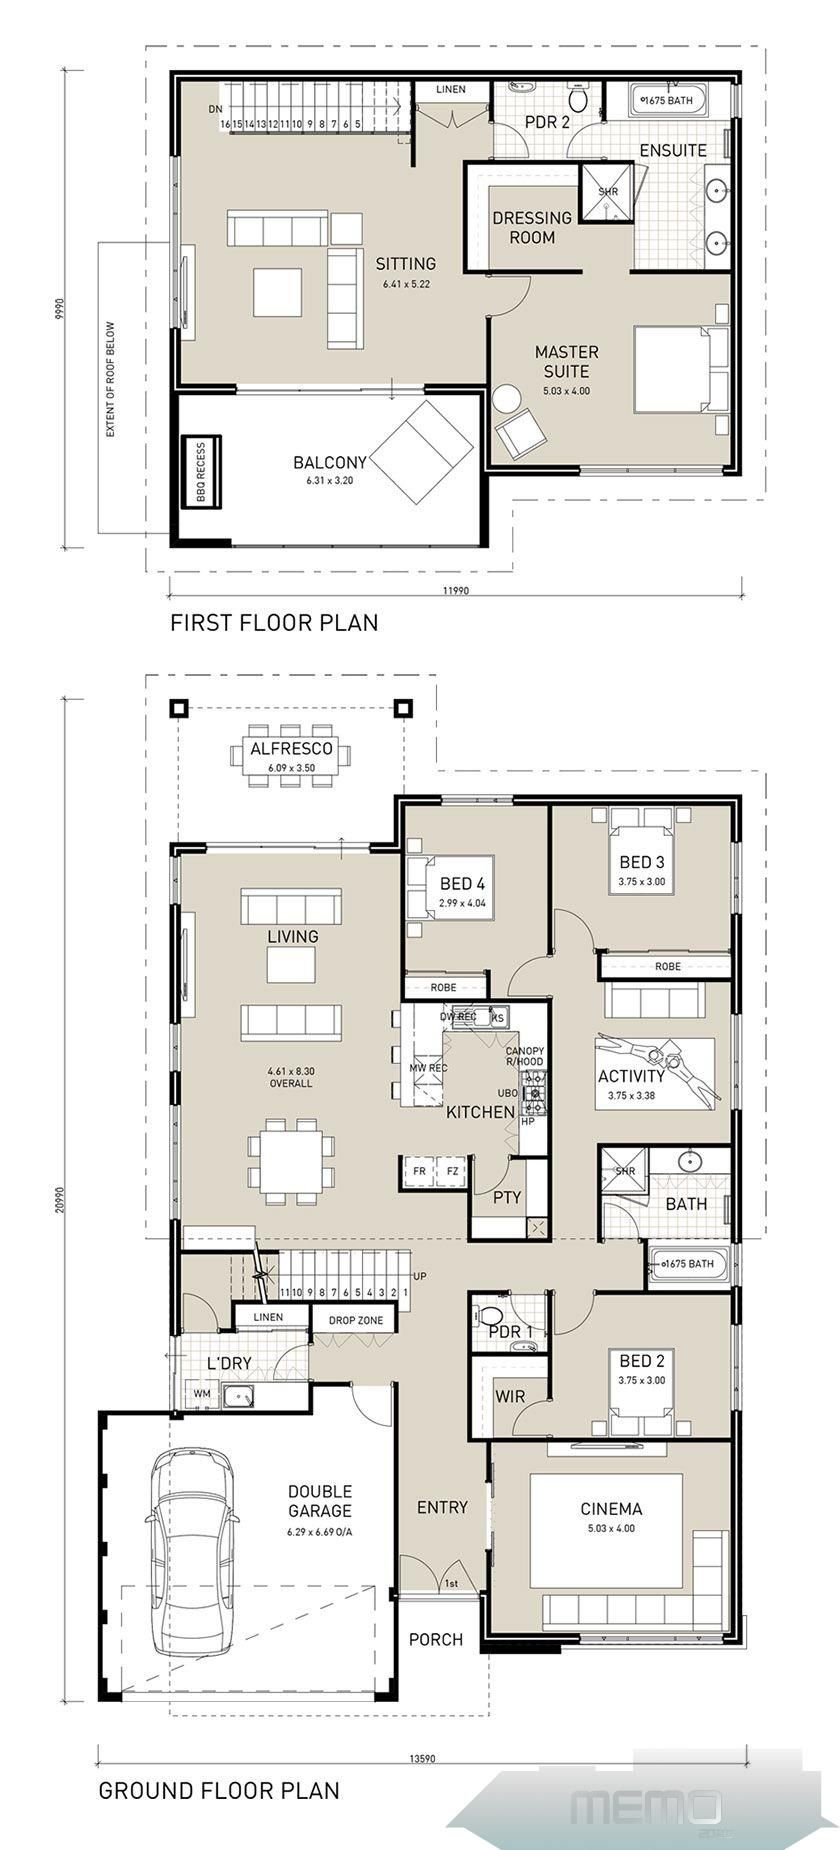 Apr 17 2017 This Large Two Storey Four Bedroom Home Features Your Own Private Adults Wing Upstai Two Storey House Plans House Layout Plans Two Storey House